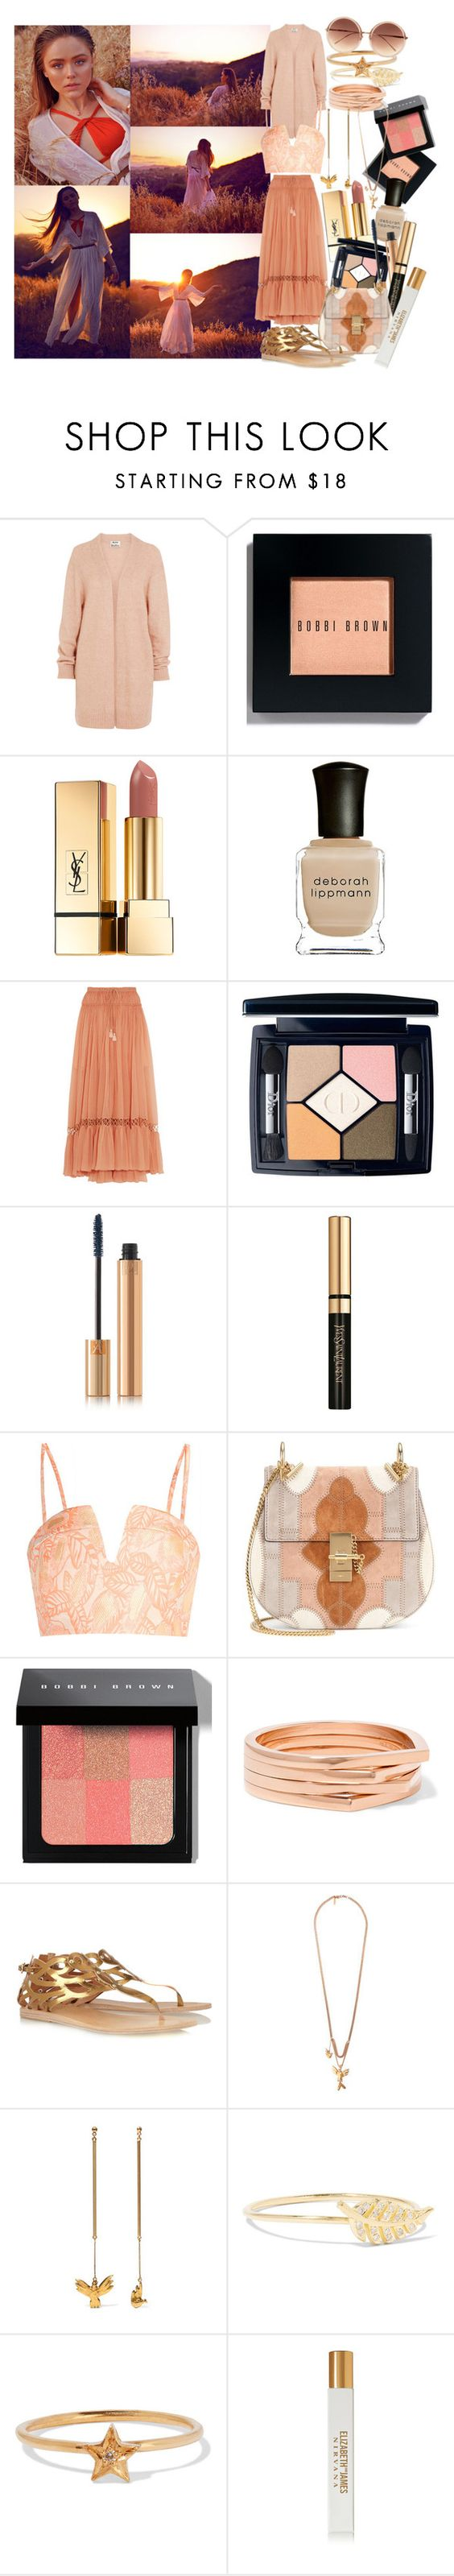 """""""Dusk"""" by brownish ❤ liked on Polyvore featuring Acne Studios, Bobbi Brown Cosmetics, Yves Saint Laurent, Deborah Lippmann, Chloé, Christian Dior, Opening Ceremony, Repossi, Ancient Greek Sandals and Jennifer Meyer Jewelry"""